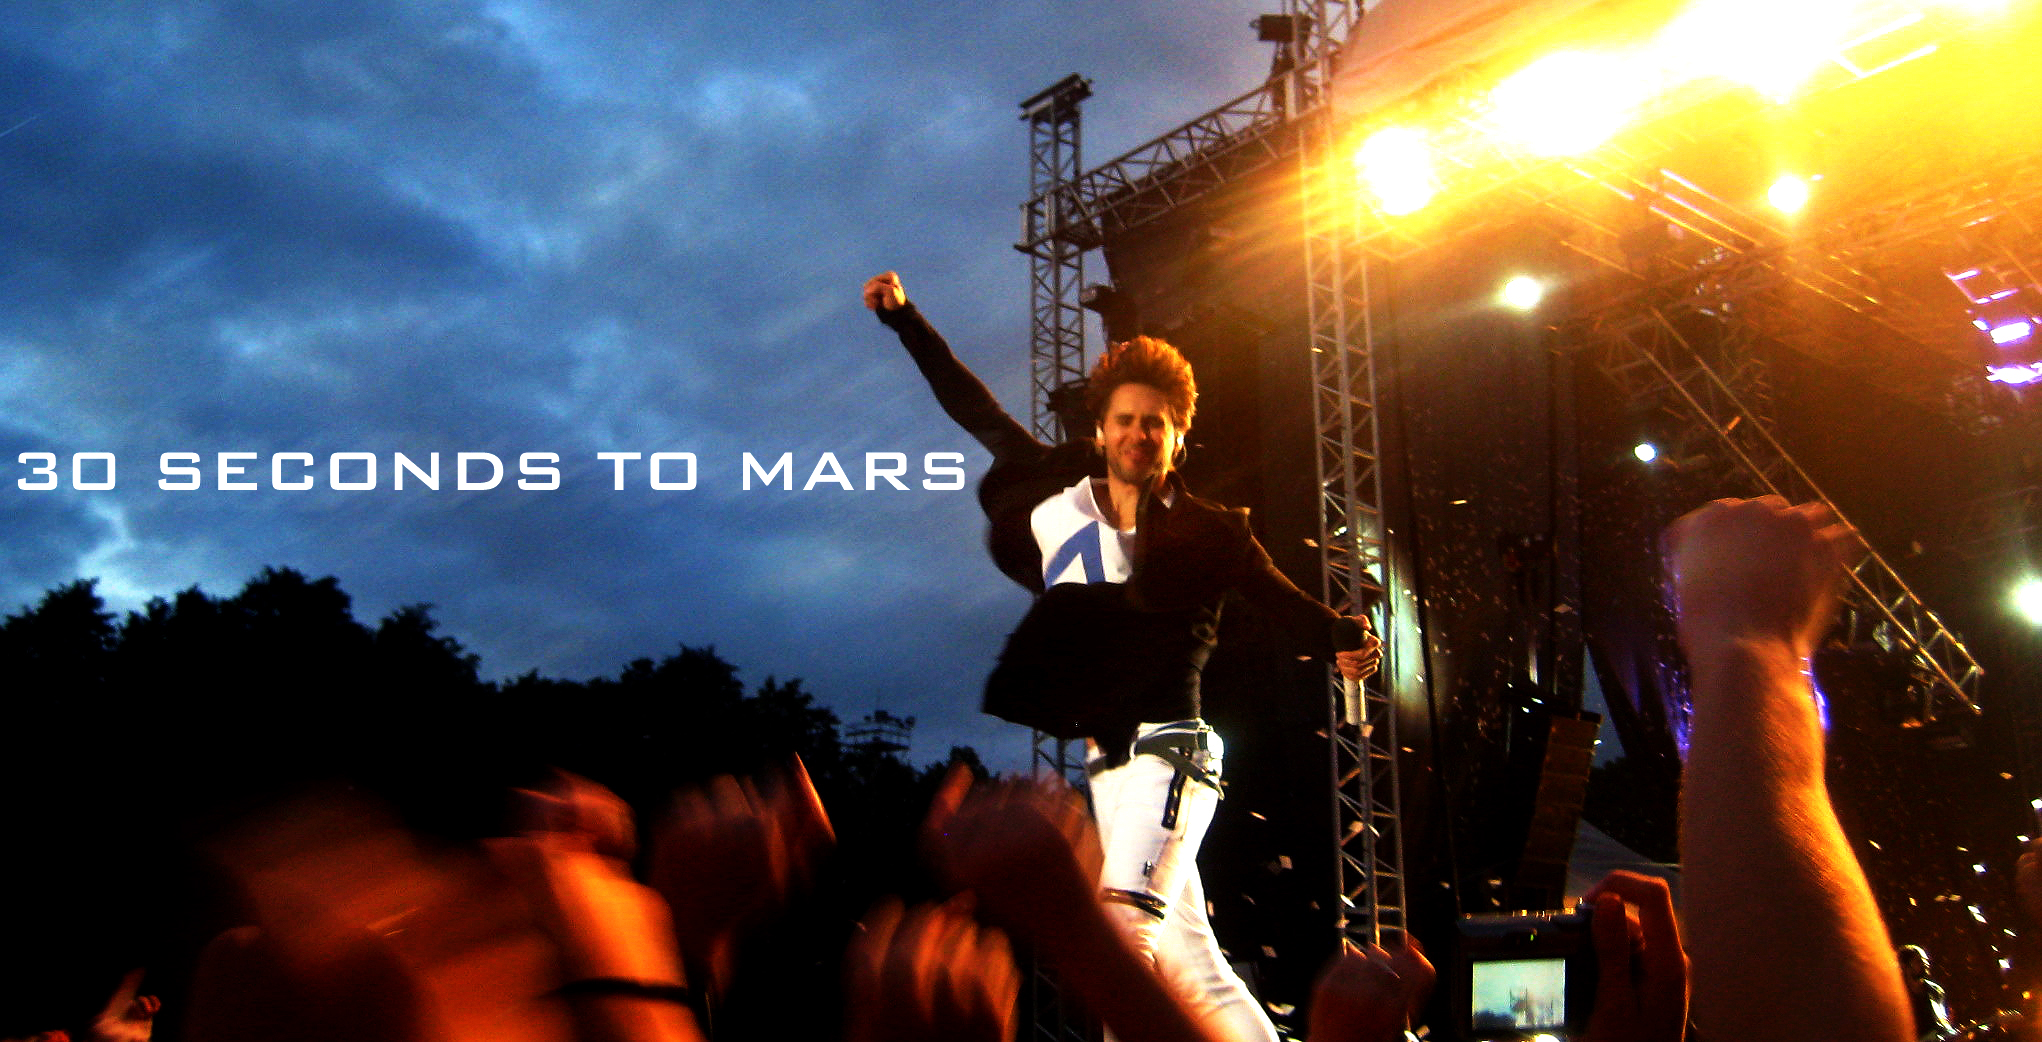 30 seconds to mars Jared Computer Wallpapers, Desktop ...